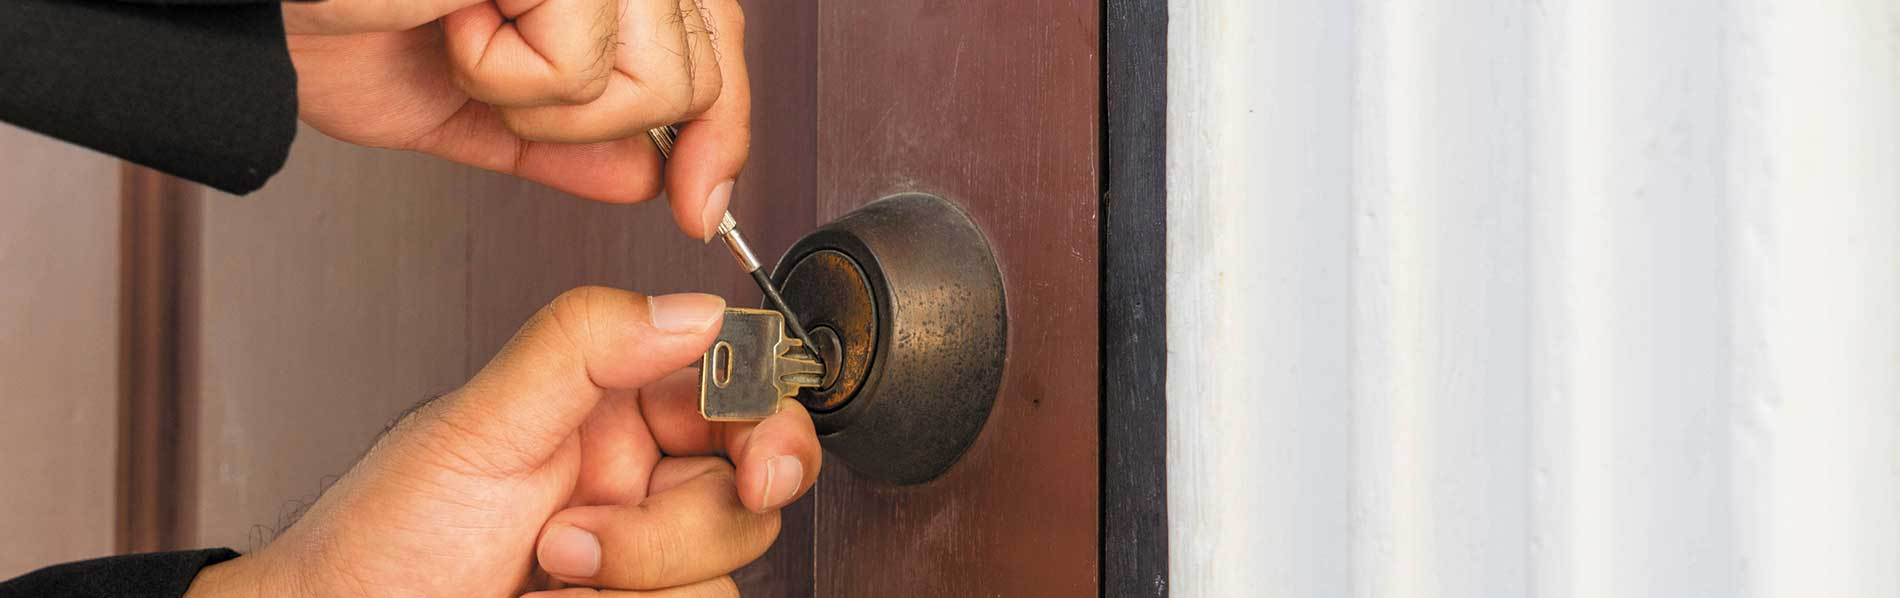 Locksmith Of Sunnyvale, Sunnyvale, CA 408-273-9231